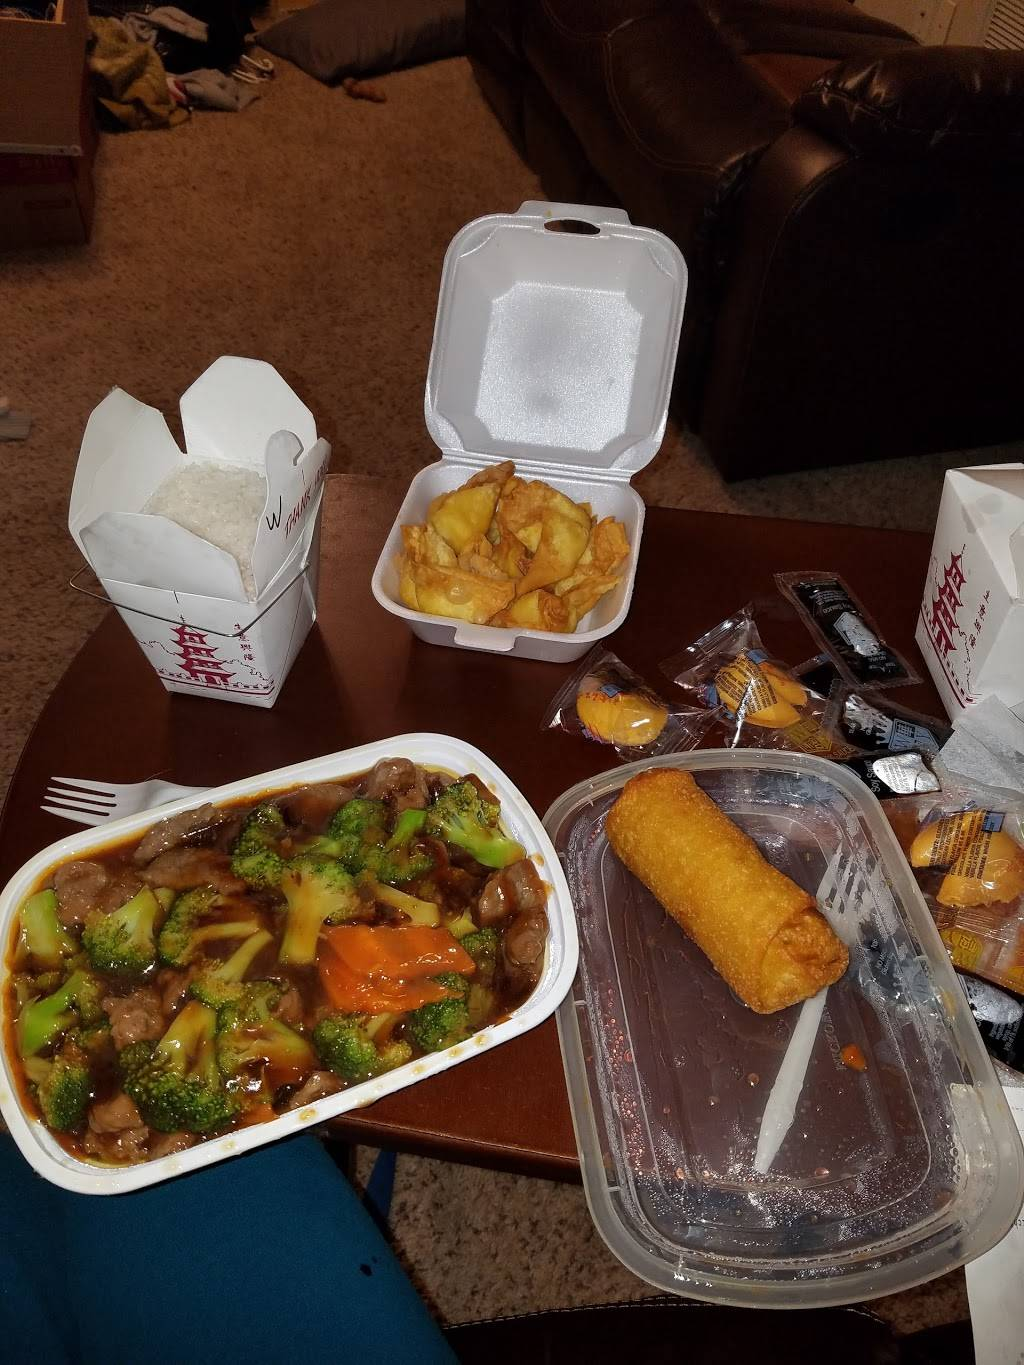 China One   restaurant   917 Tiny Town Rd Suite D, Clarksville, TN 37042, USA   9315538080 OR +1 931-553-8080